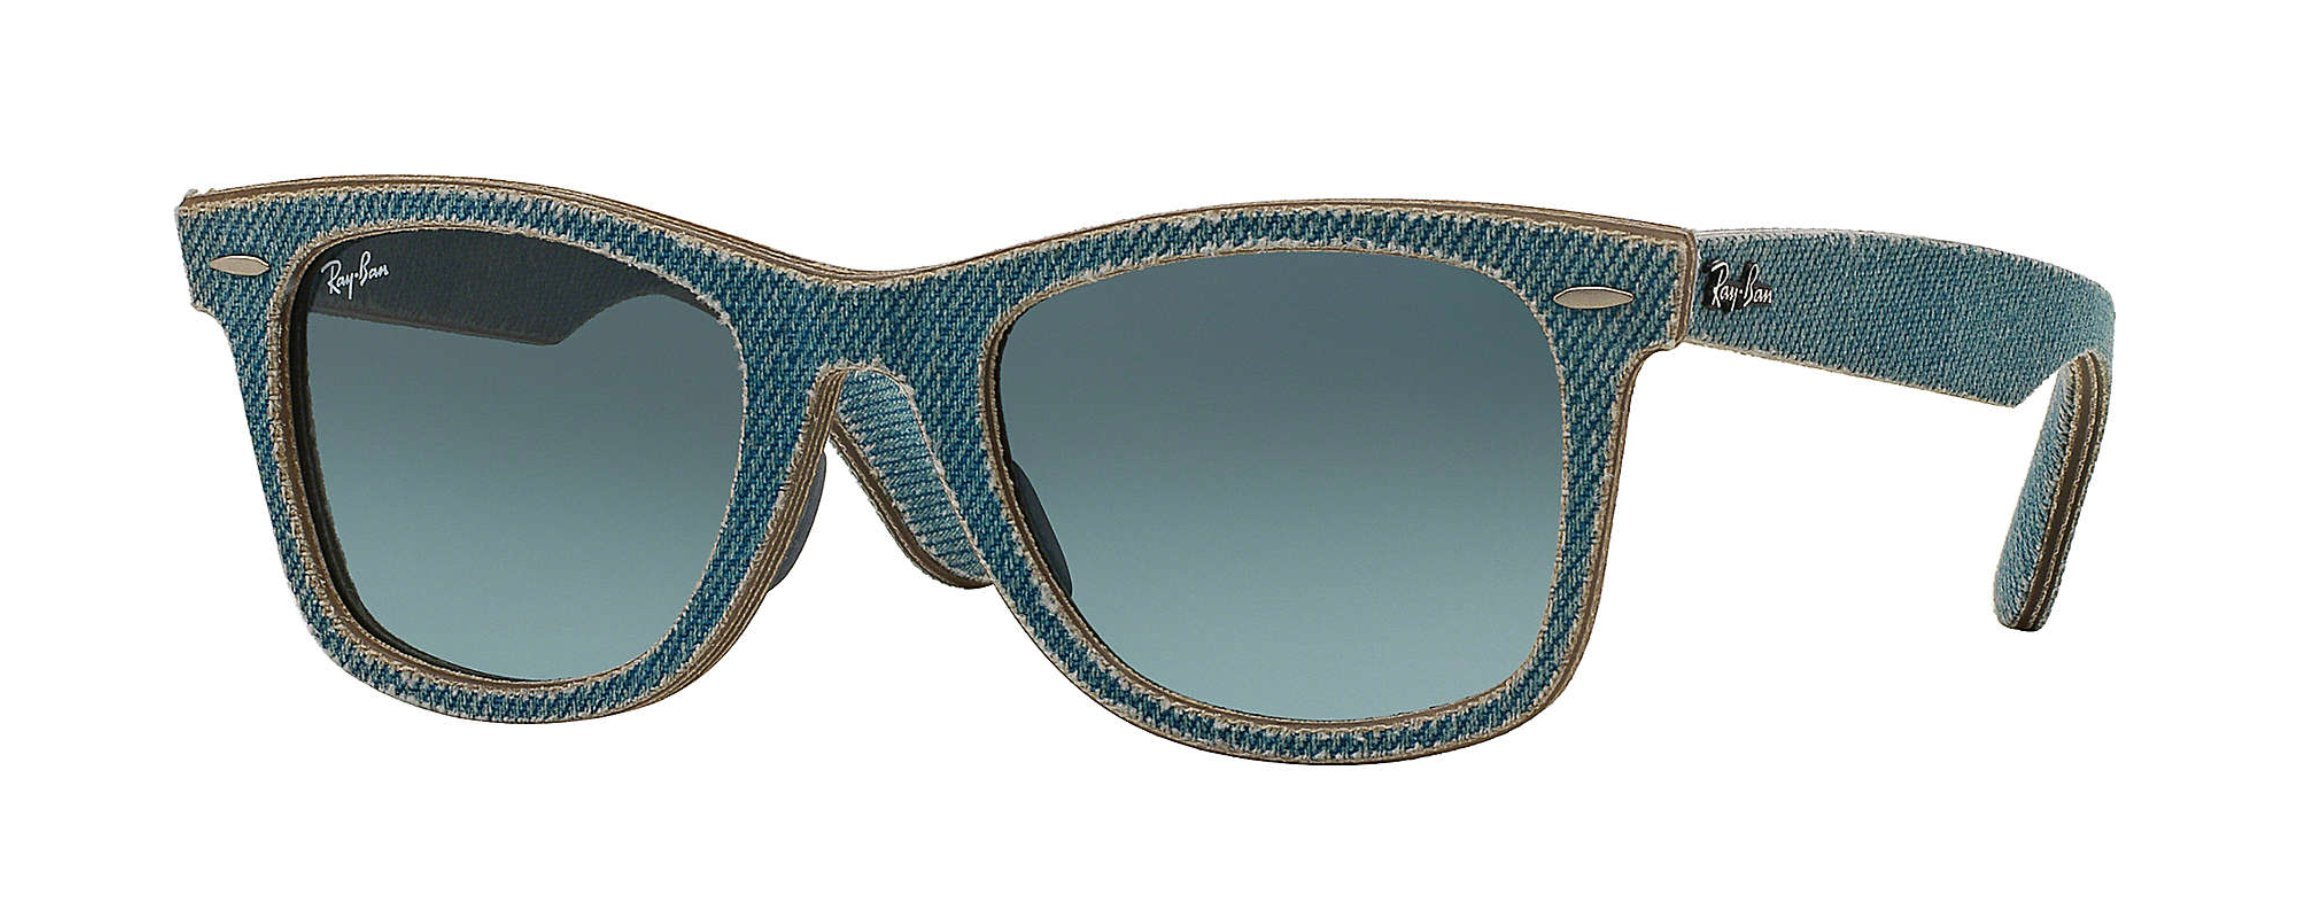 Ray-Ban Unisex RB2140F 11644M Original Wayfarer Sunglasses Denim Blue Gradient 52mm by Ray-Ban